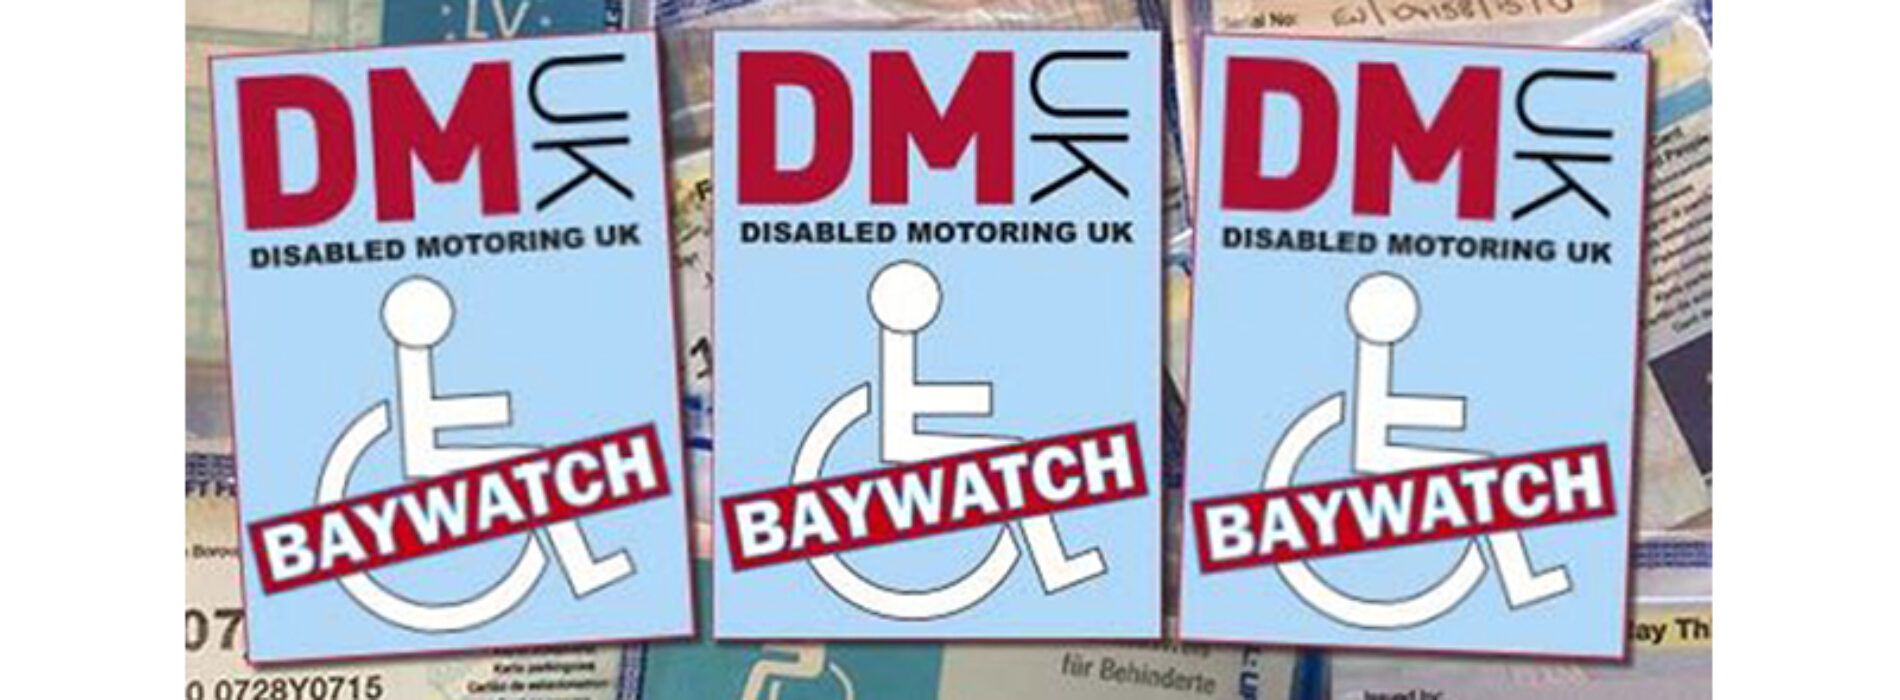 Disability Motoring UK: how you can help to stamp out disabled parking abuse